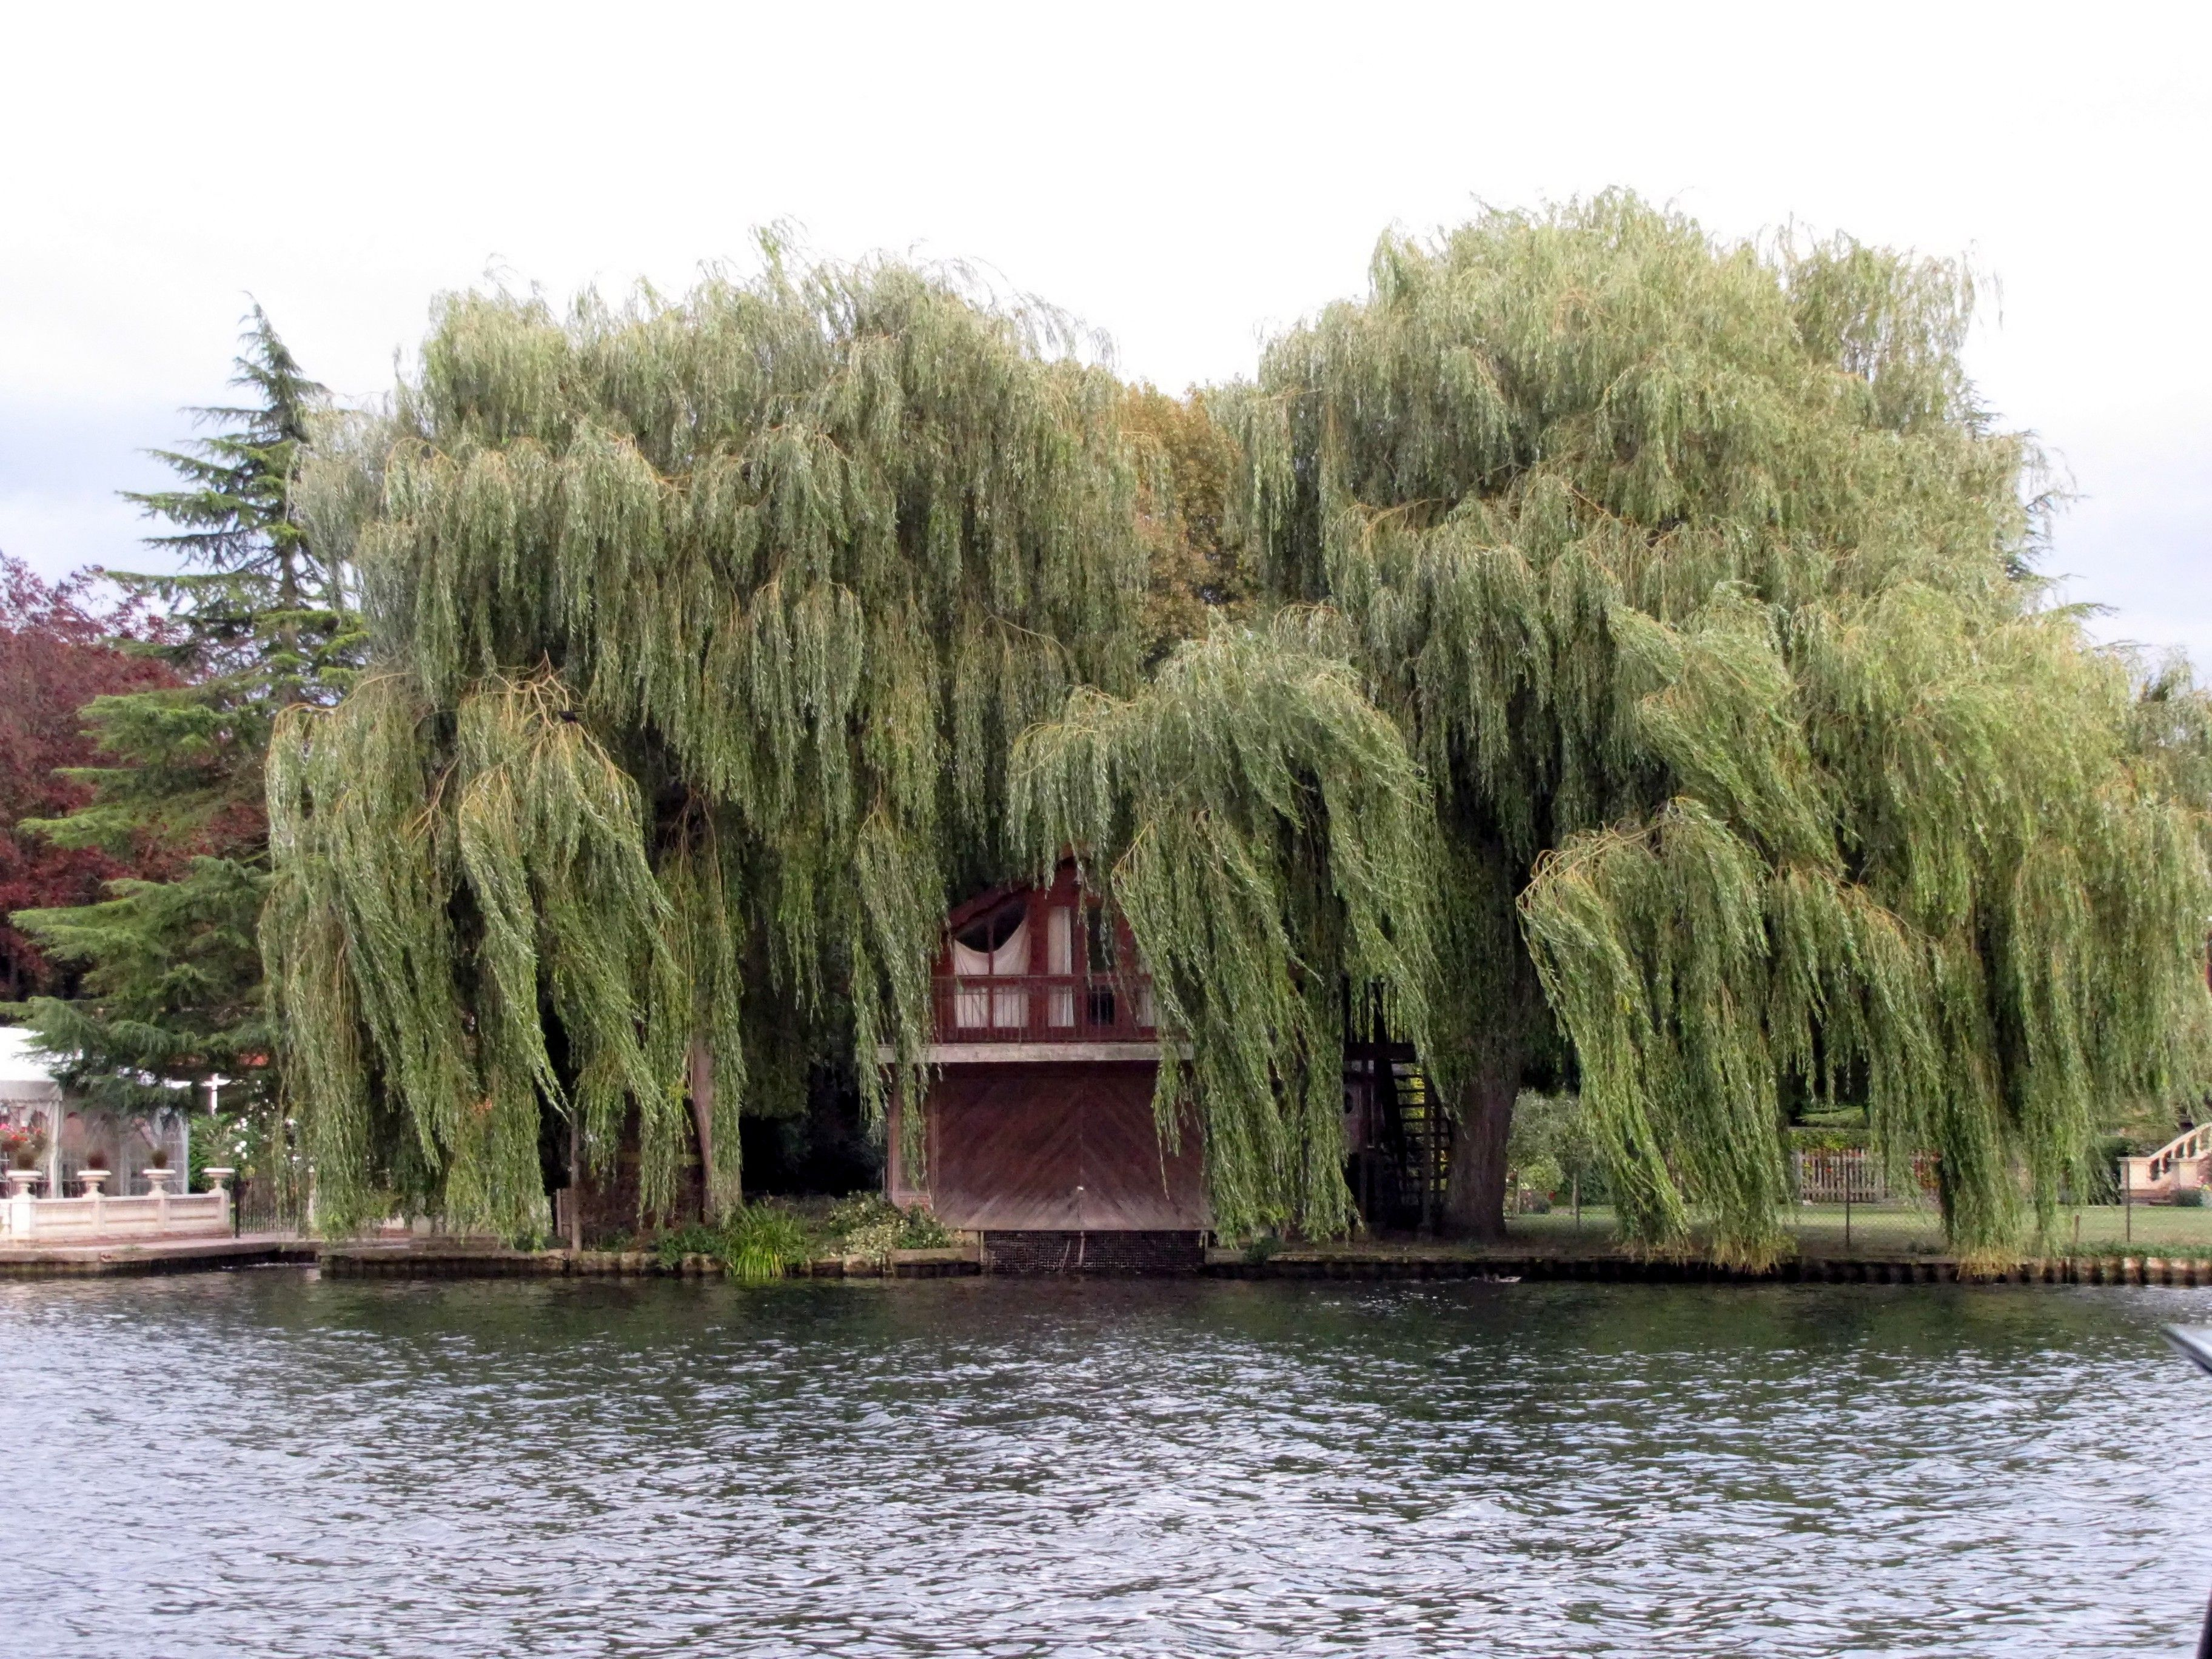 Willow trees beside the Thames in Marlow, UK 2009, photo by K Cheek